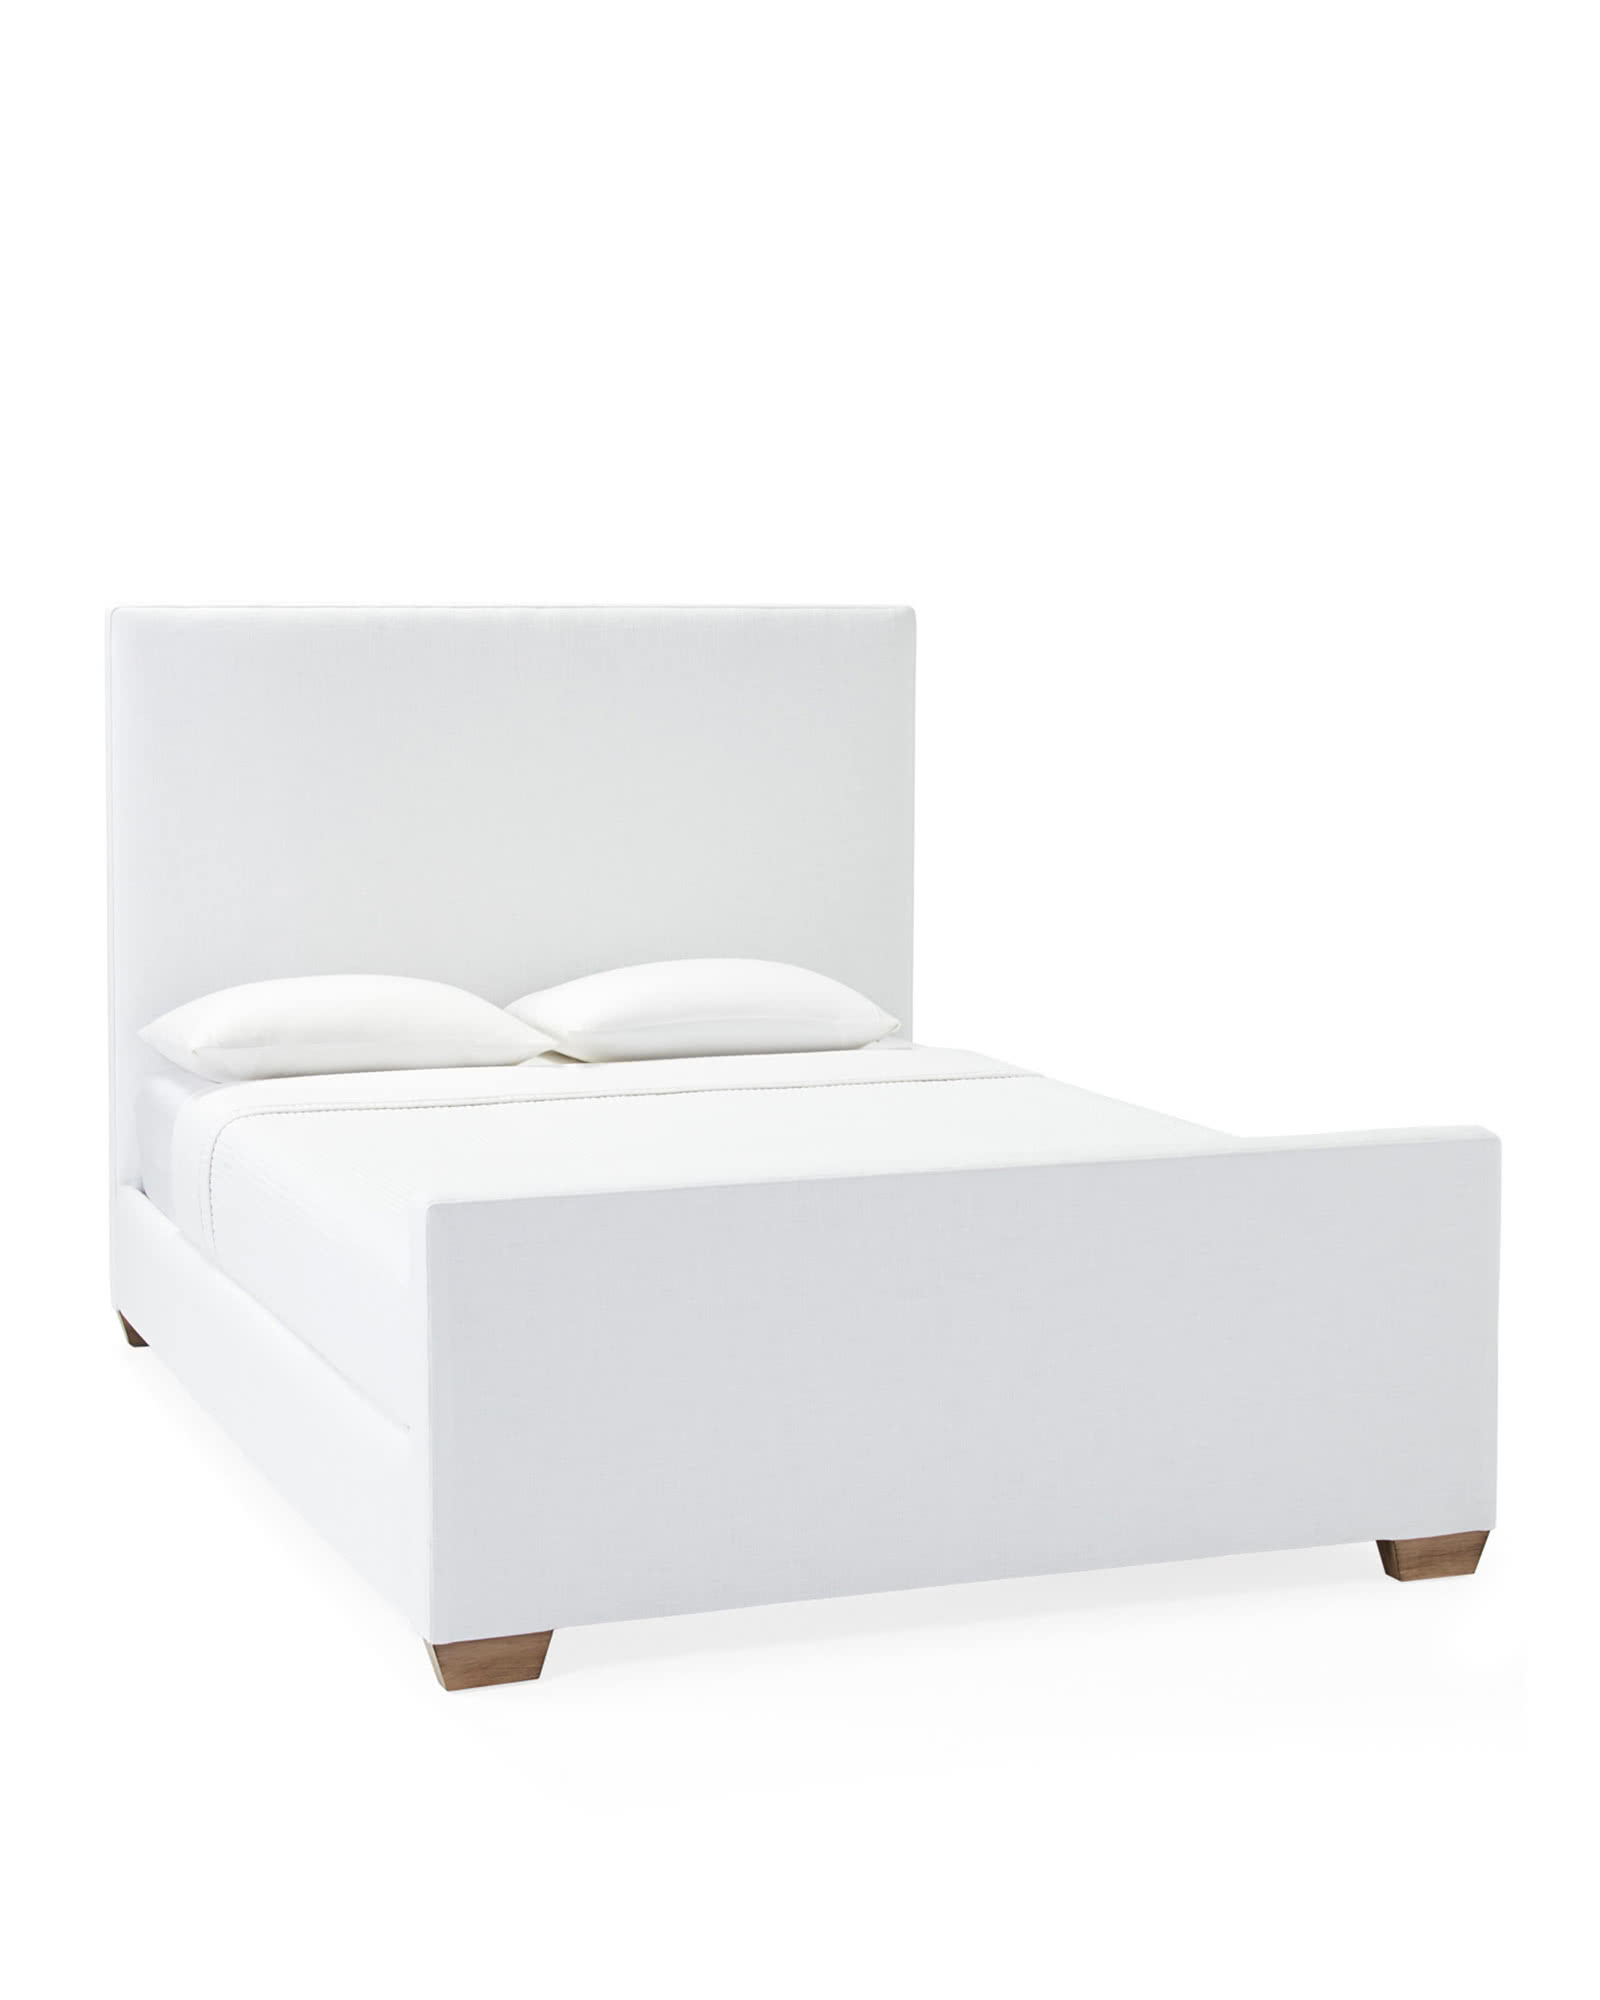 Octavia Bed with Footboard,